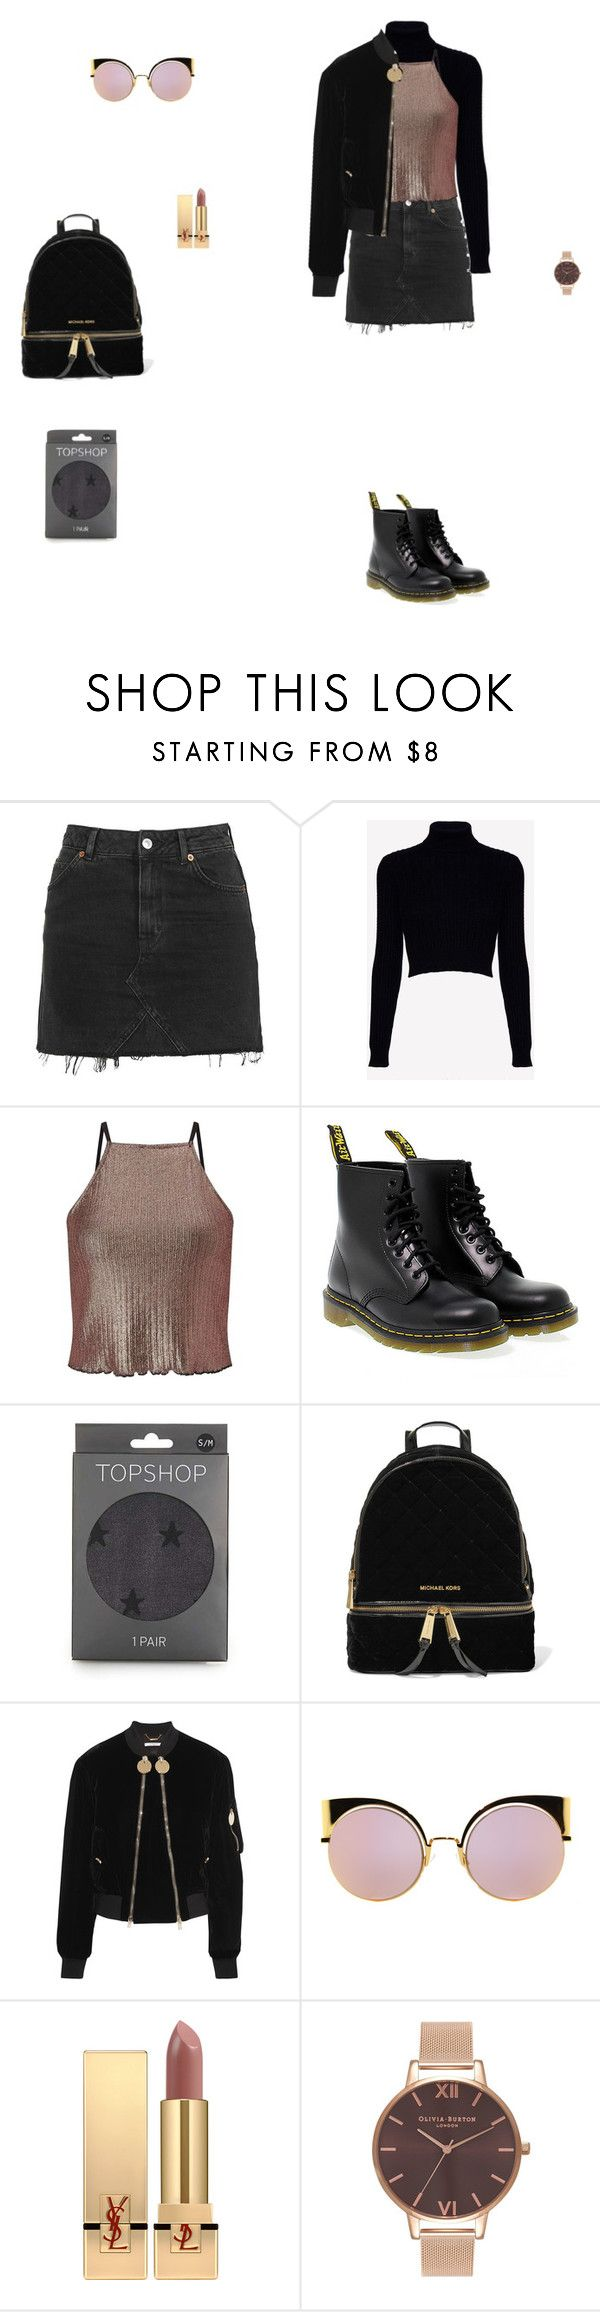 """""""8 * 11 * 2016"""" by isabellarochin ❤ liked on Polyvore featuring Topshop, Jack Wills, Miss Selfridge, Dr. Martens, MICHAEL Michael Kors, Givenchy, Fendi, Yves Saint Laurent and Olivia Burton"""